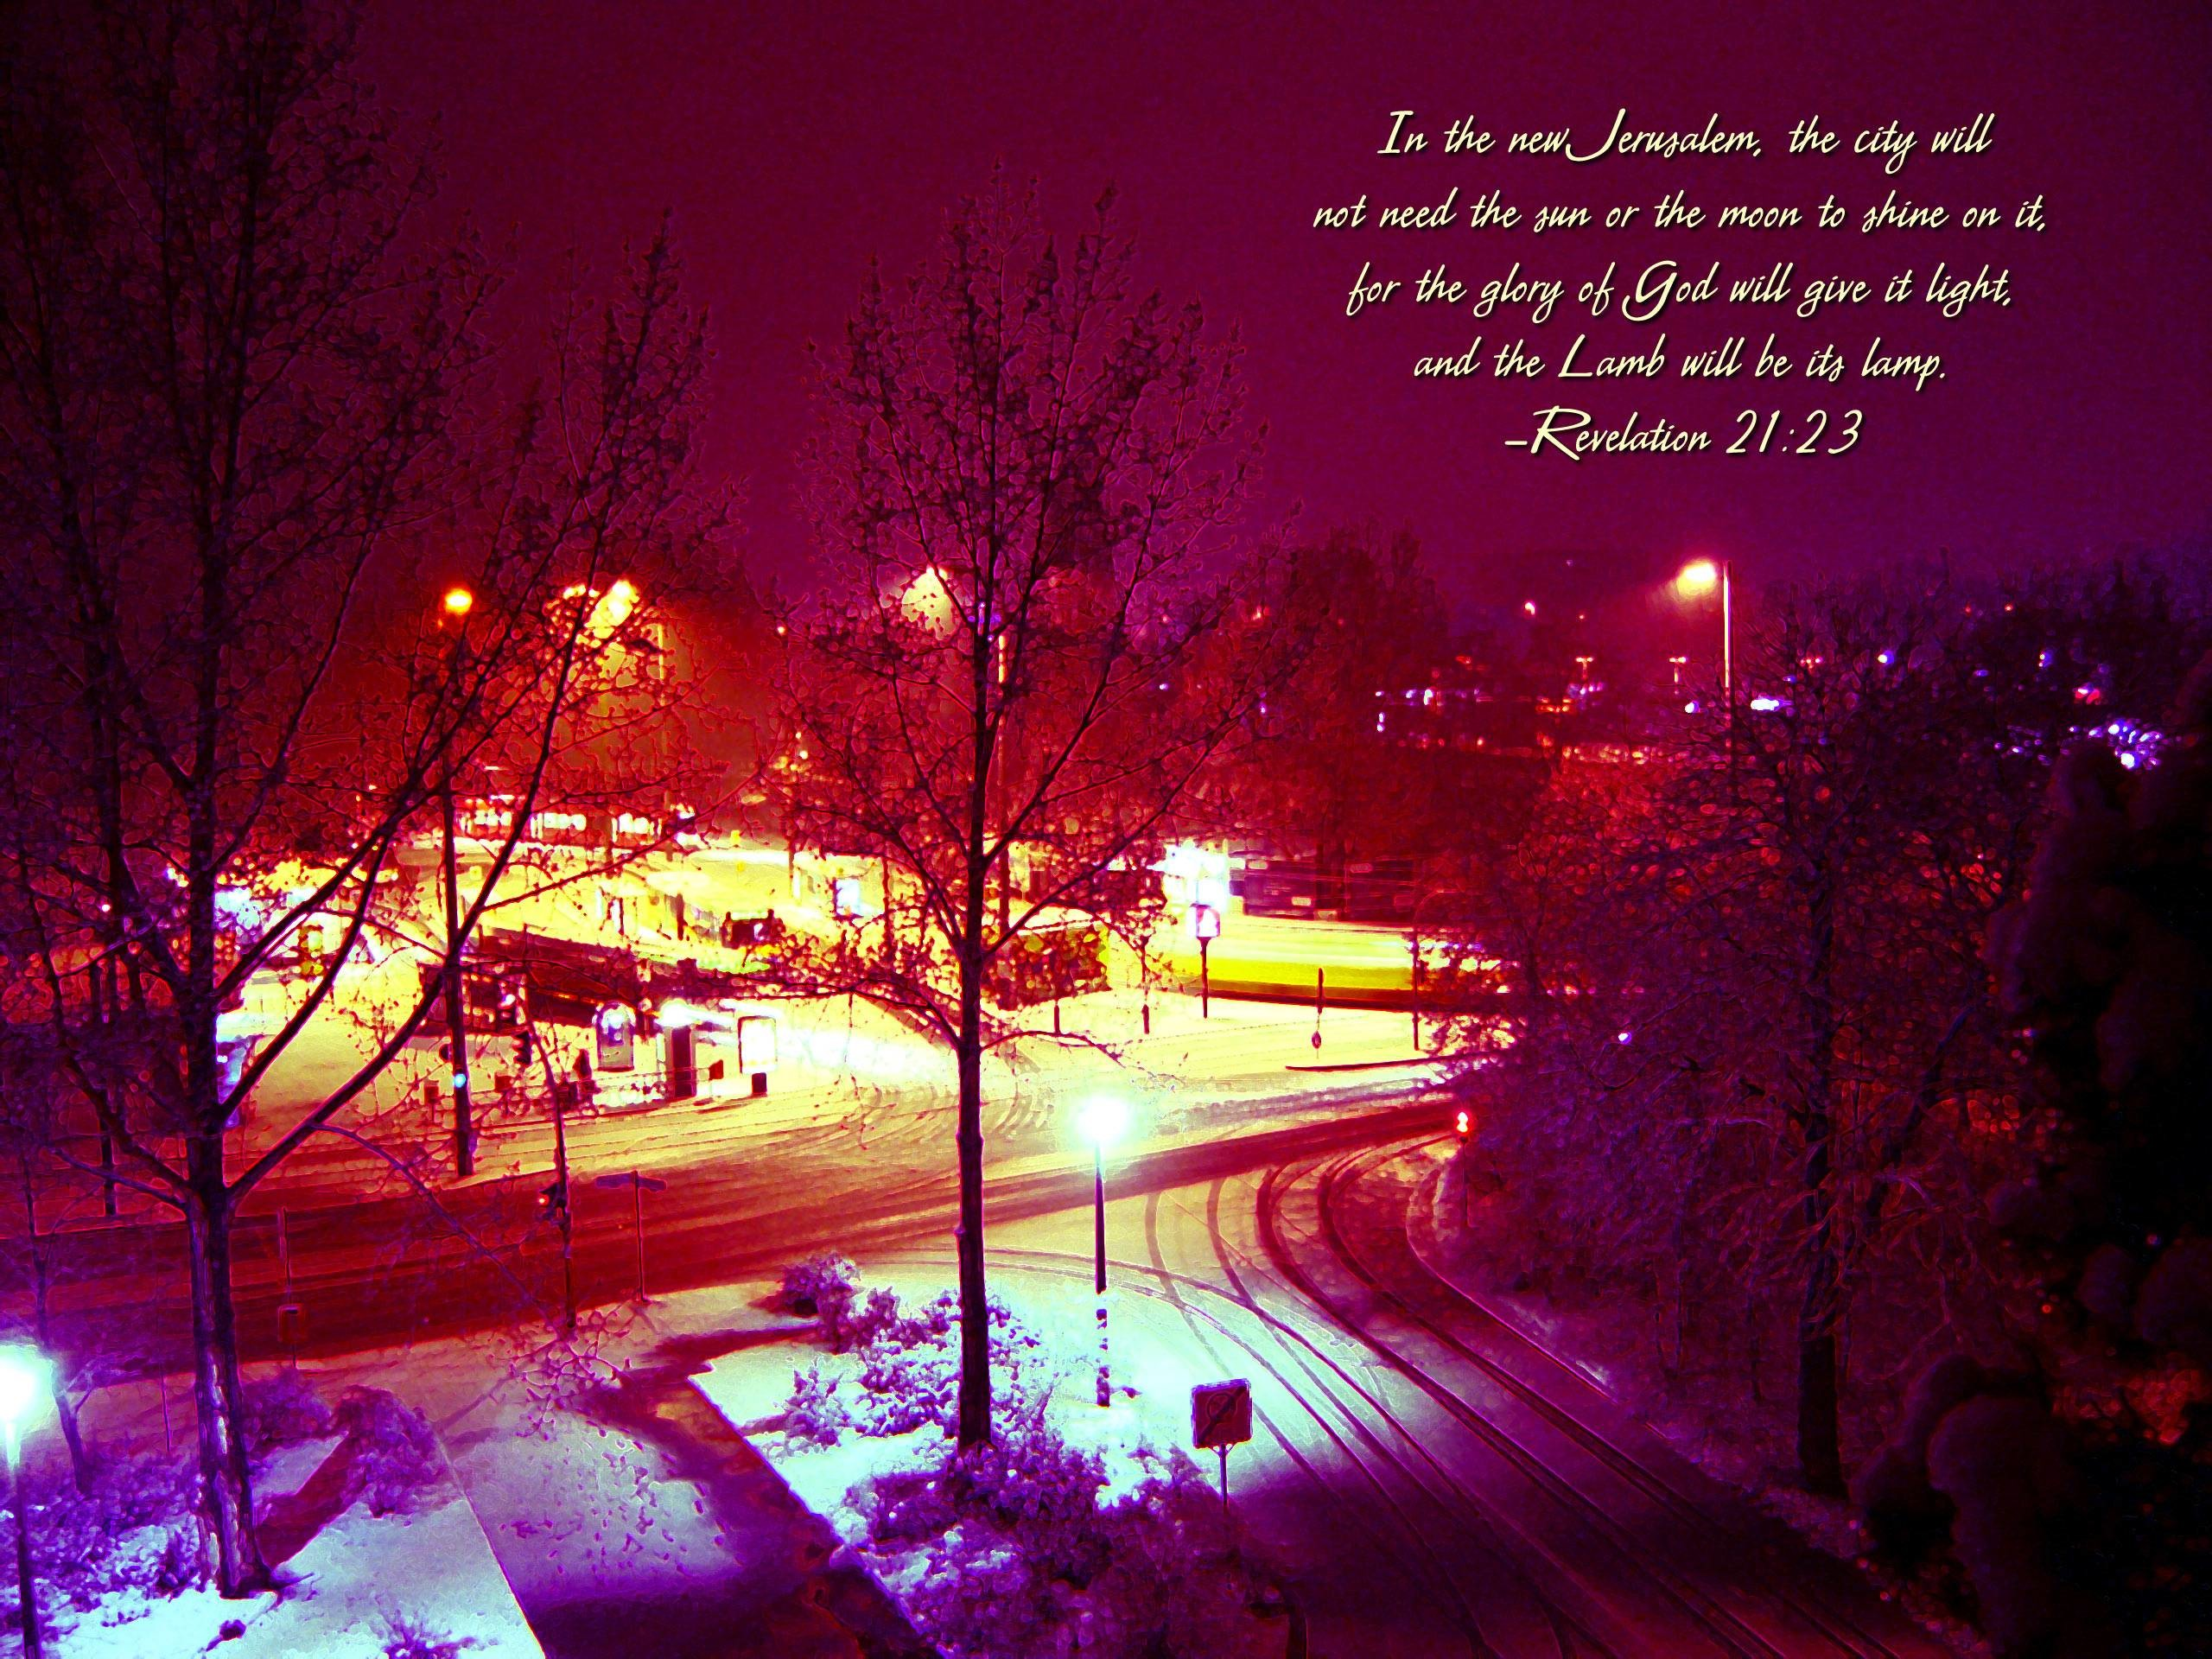 2560x1920 Wallpapers For > Jesus Christ Wallpaper With Bible Verse In Malayalam